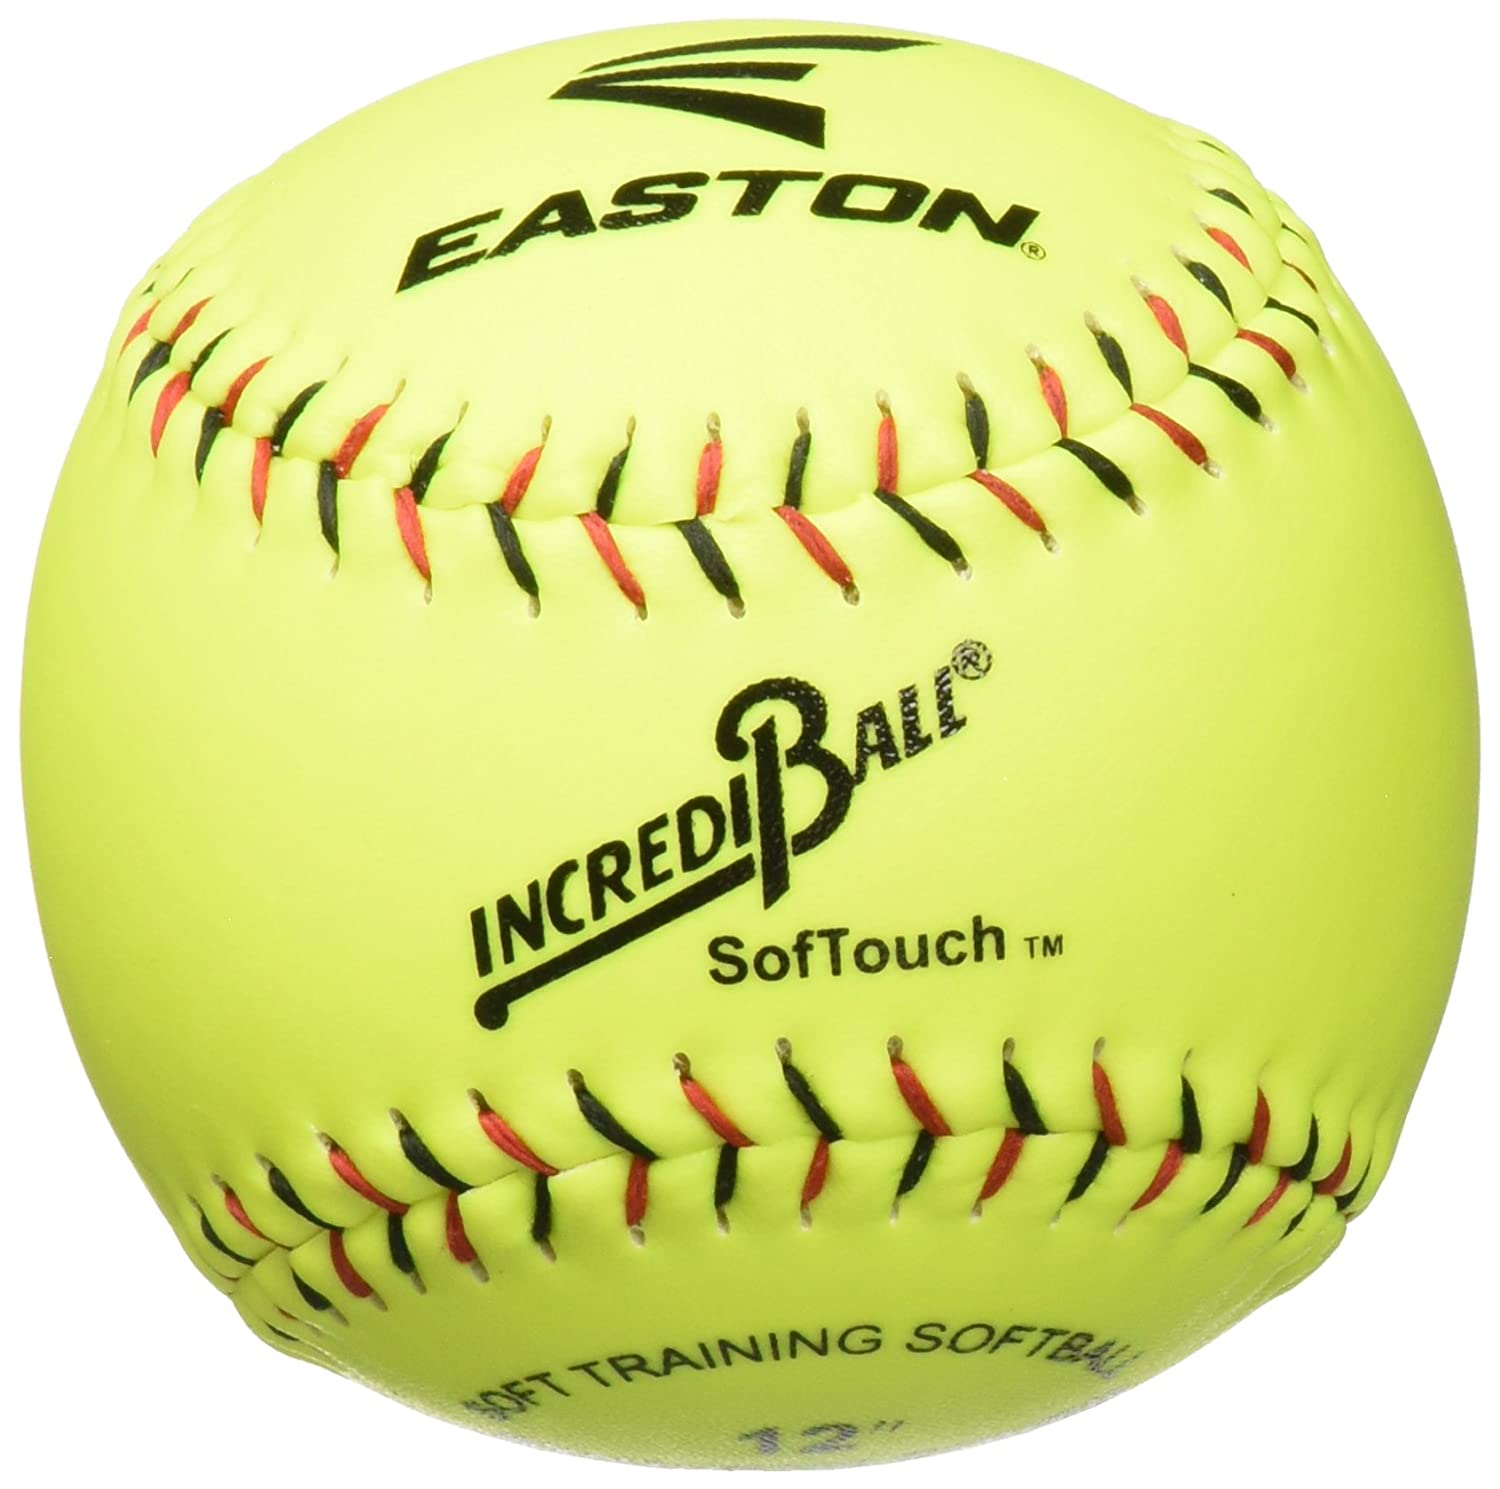 Easton Softouch Softouch Incrediball B009VLFHHA B009VLFHHA 11-Inch|ネオン(Neon) 11-Inch ネオン(Neon) 11-Inch, ラディアンヌ:dc52d2ff --- sayselfiee.com